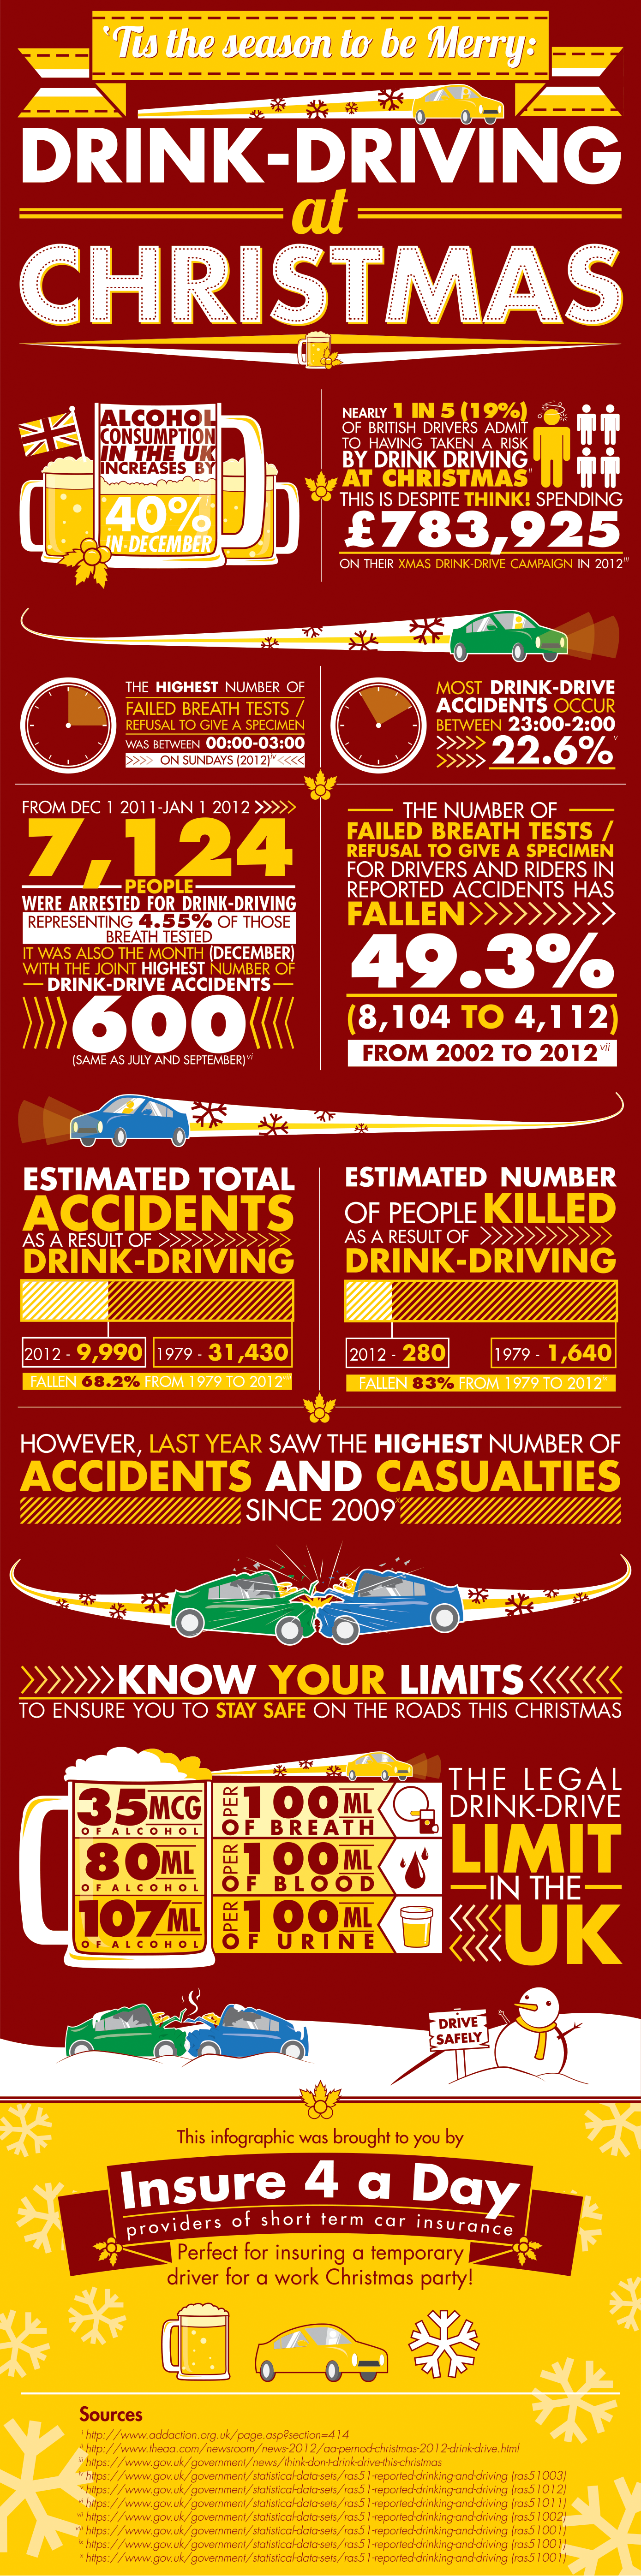 Georgie Wood  Georgie Wood  Page  Drink Driving  Infographics